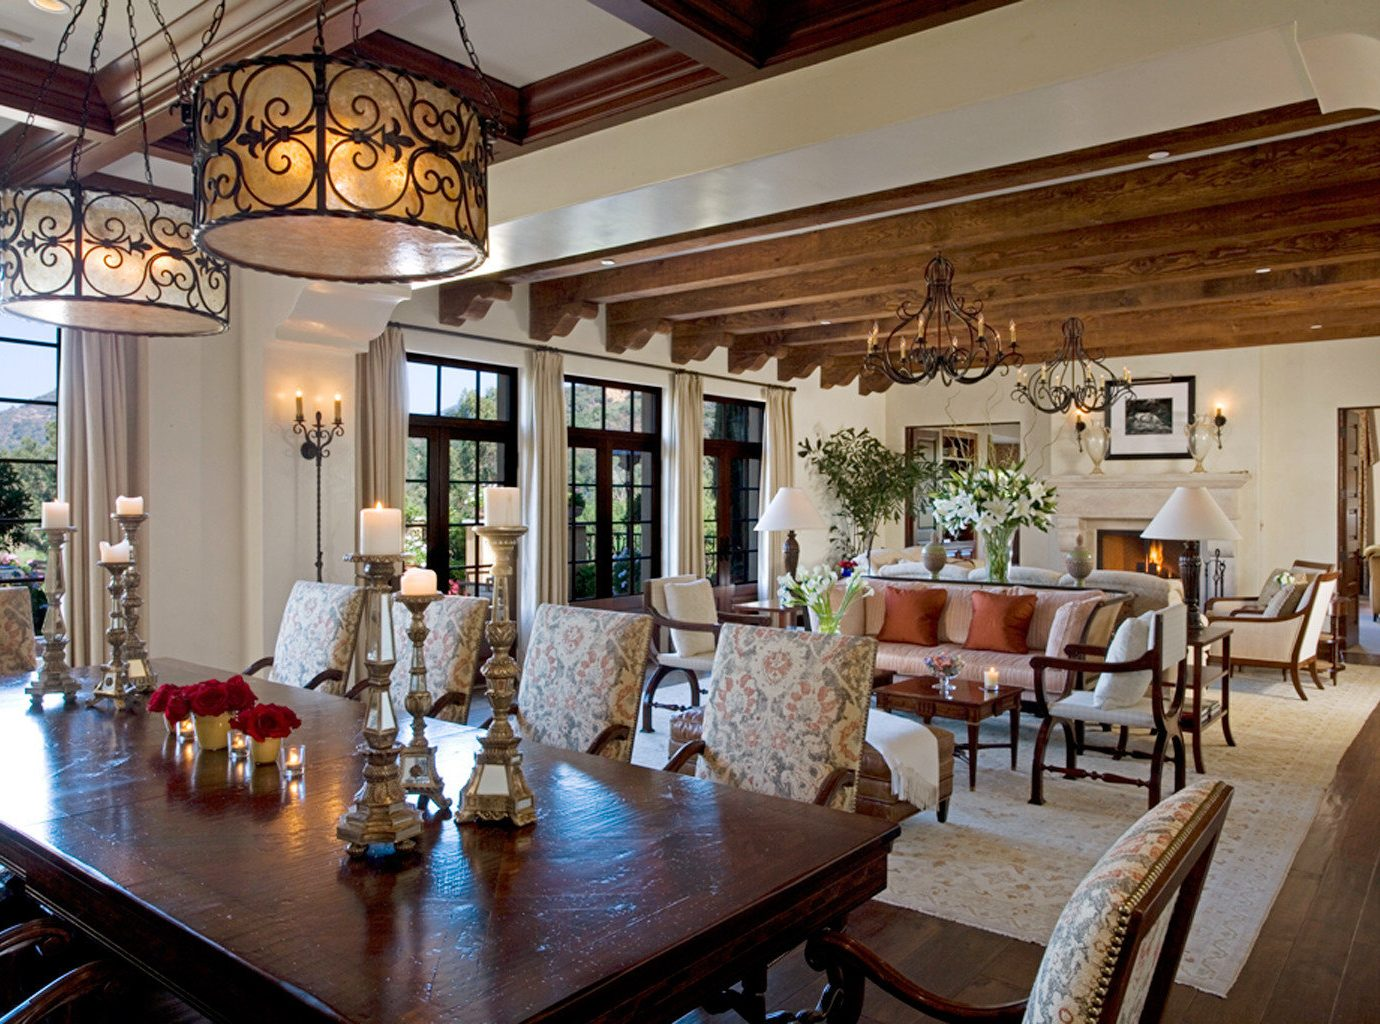 Dining Drink Eat Elegant Road Trips Trip Ideas indoor table floor room Living property estate dining room window ceiling home living room Resort restaurant interior design Villa real estate mansion Lobby cottage furniture area decorated